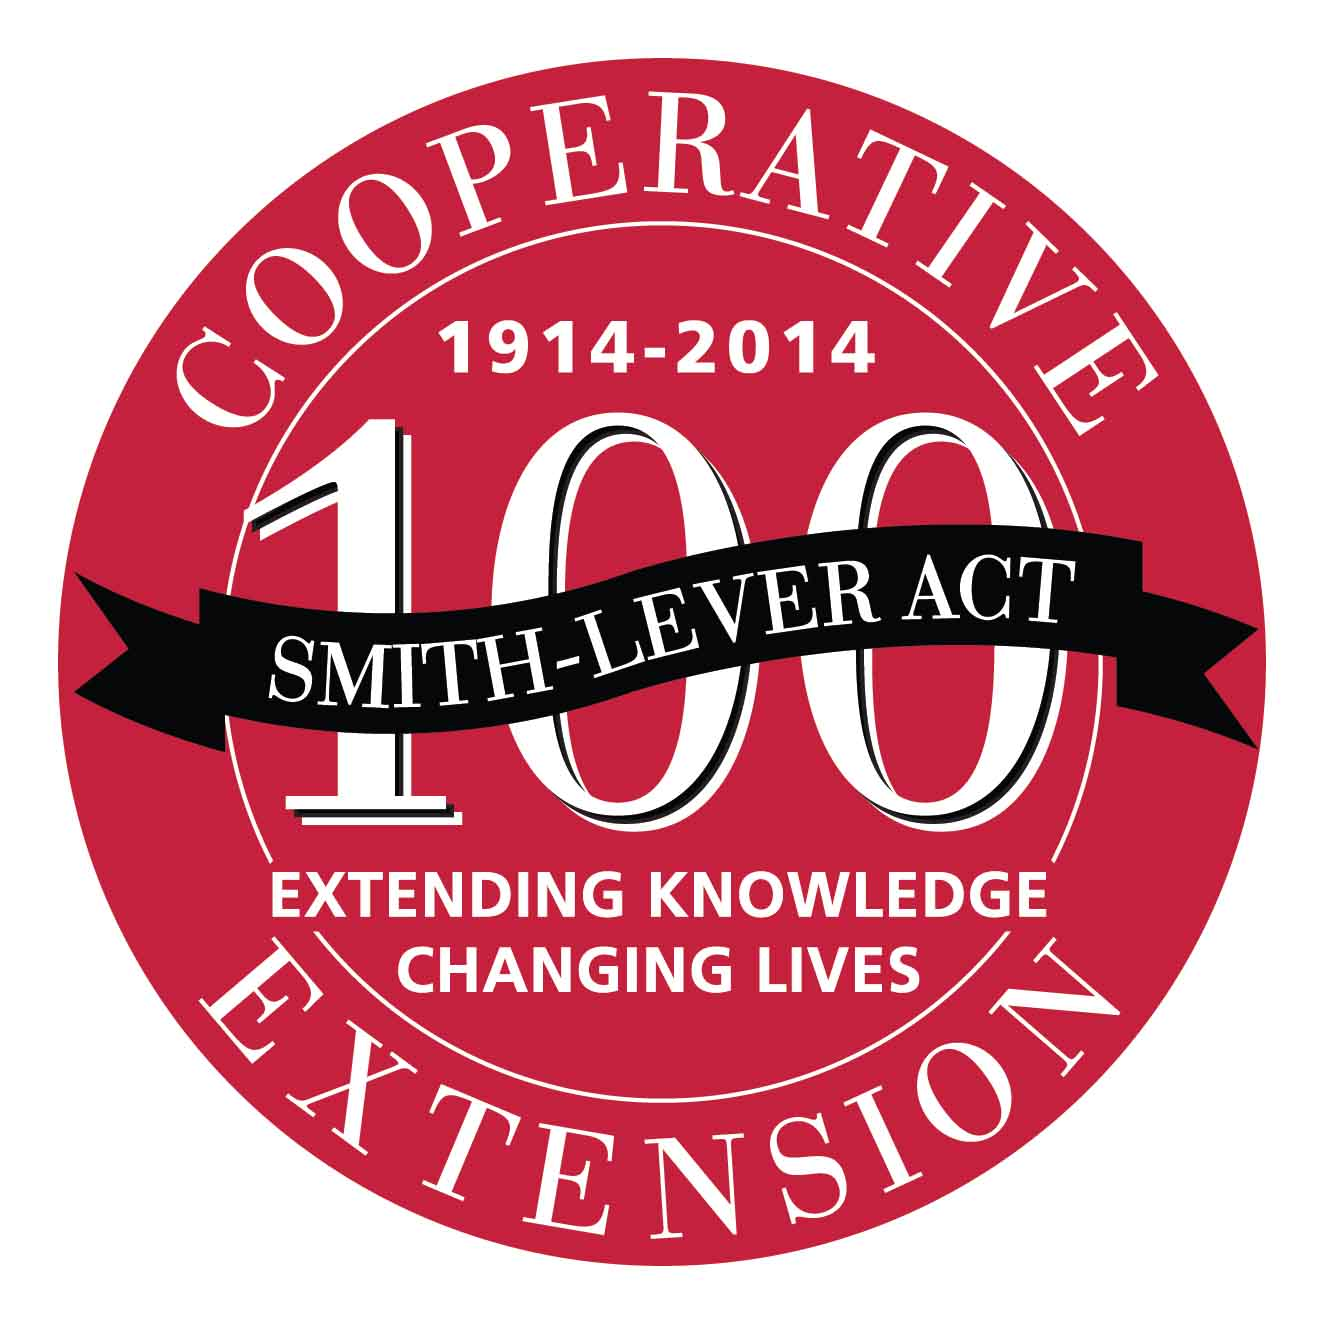 The University of Georgia is celebrating the centennial of the Smith-Lever Act, which created the national network of educators known as the Cooperative Extension System. This website is a collection of our stories and events.